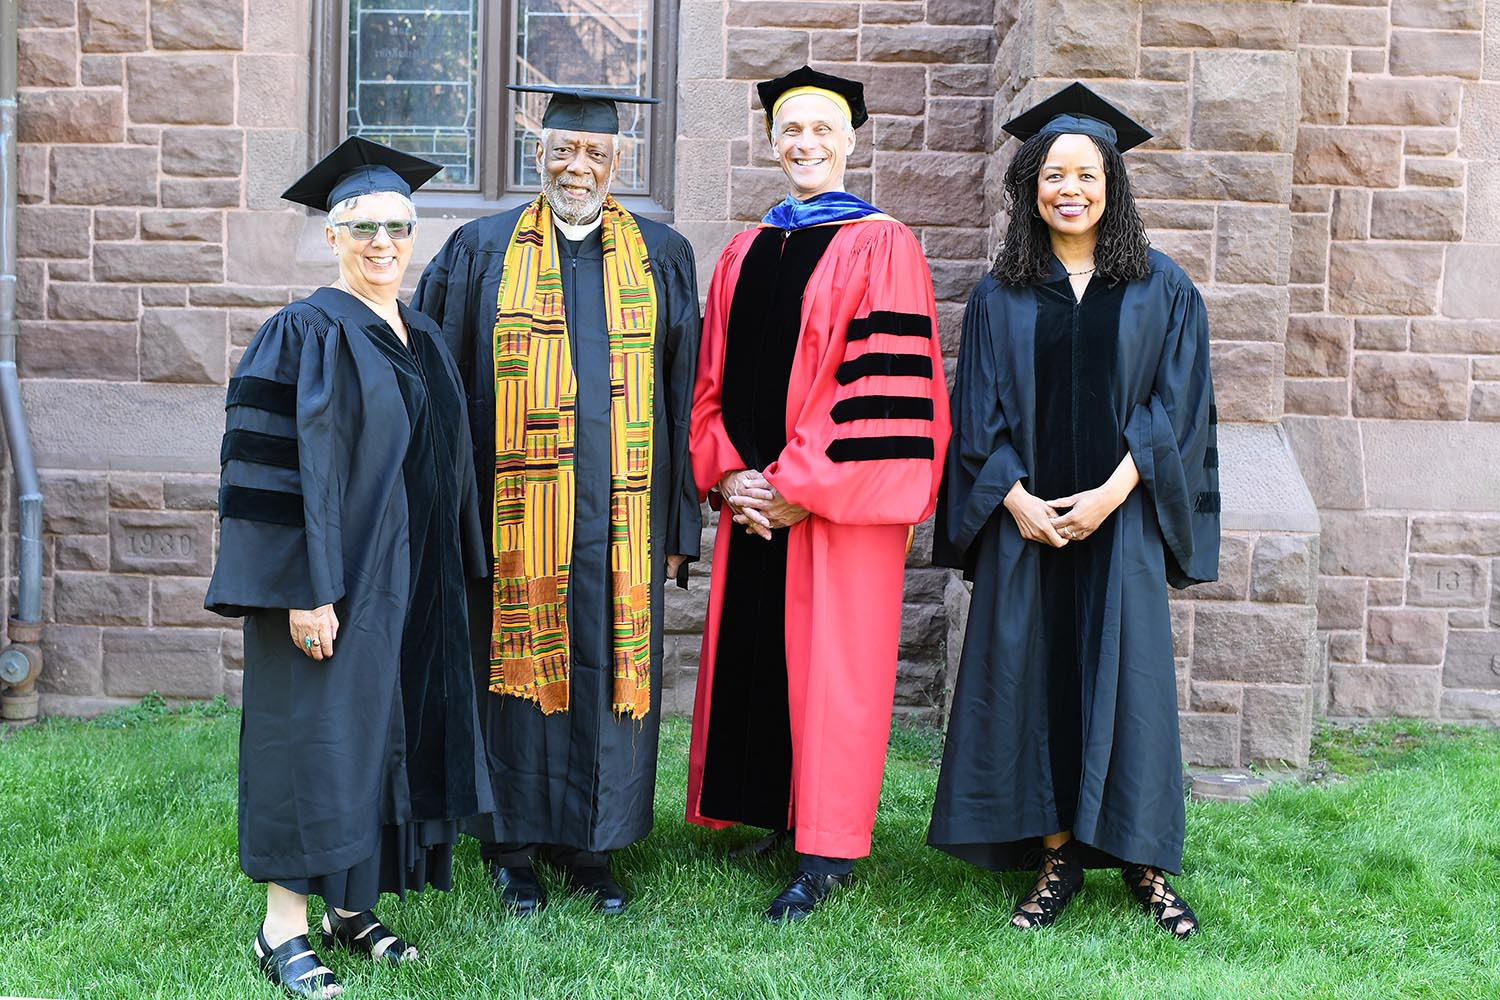 Wesleyan President Michael Roth '78 and Board of Trustees Chair Donna Morea congratulate honorary degree recipients Saidiya Hartman '84, Hazel Carby, and Edwin Sanders II '69 at Wesleyan's 187th Commencement.